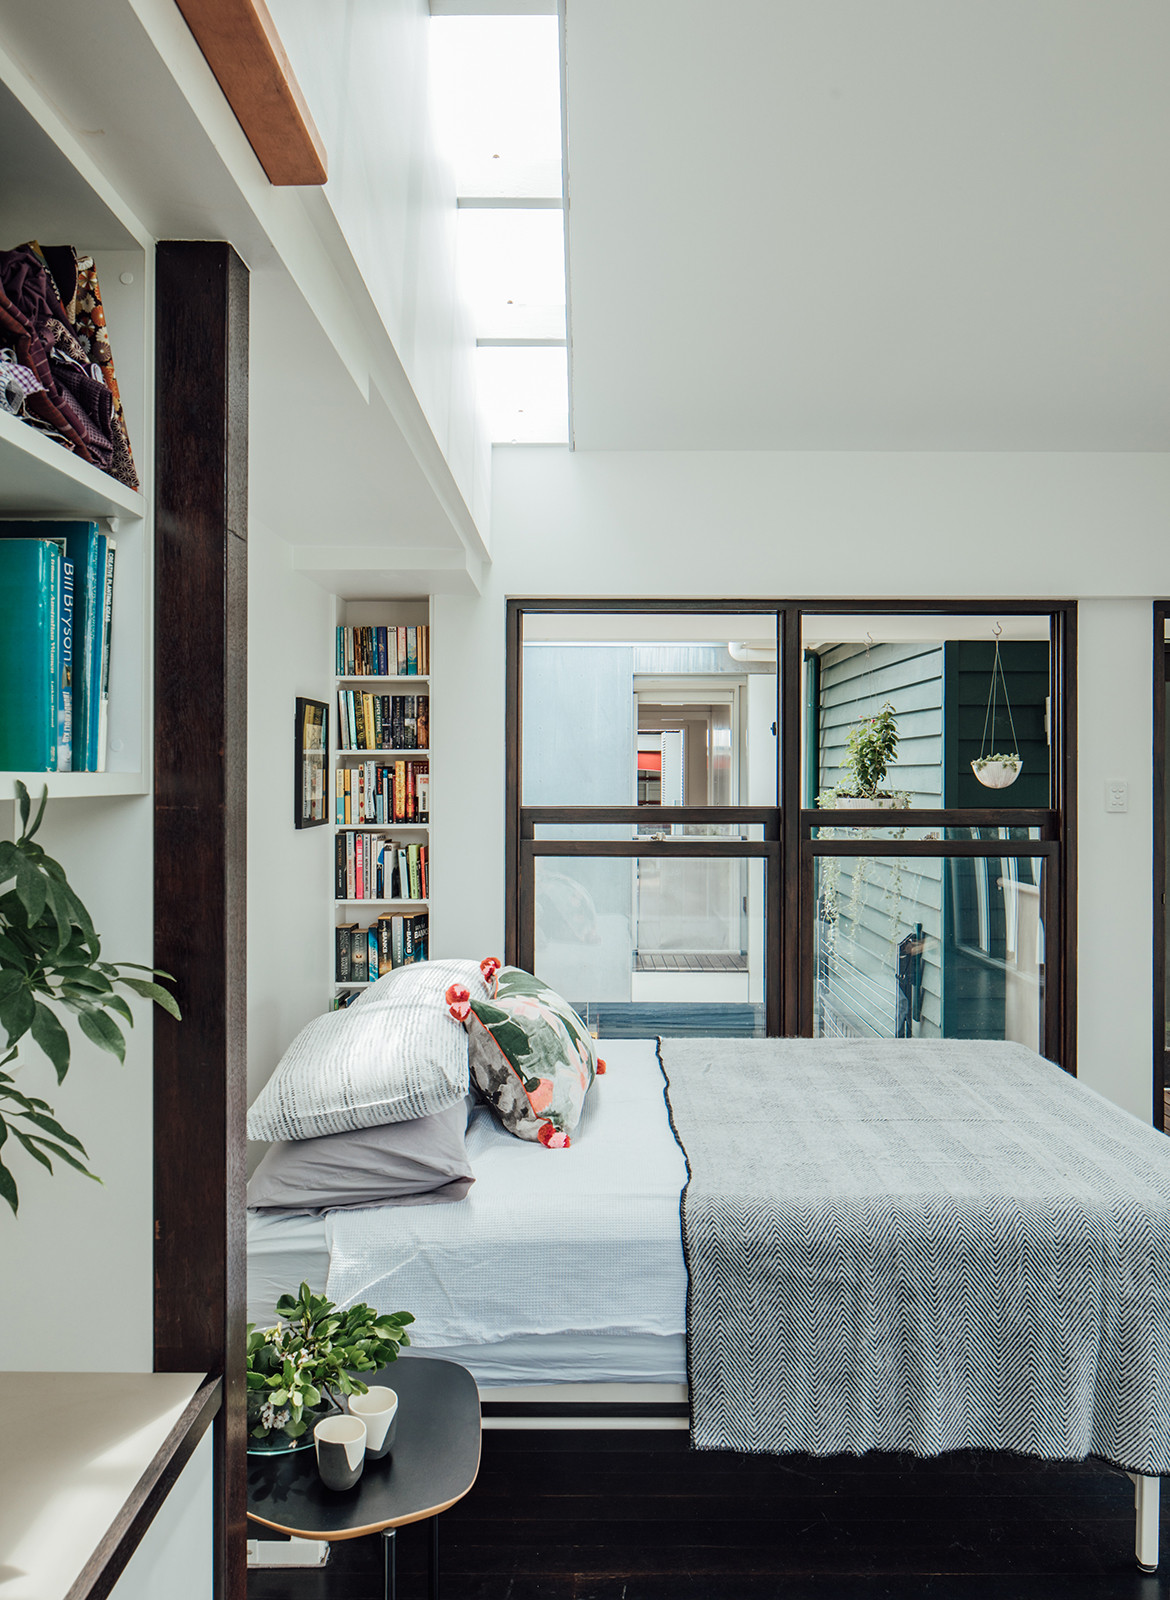 Yeronga House Tim Bennetton Architects CC Shantanu Starick bedroom 1